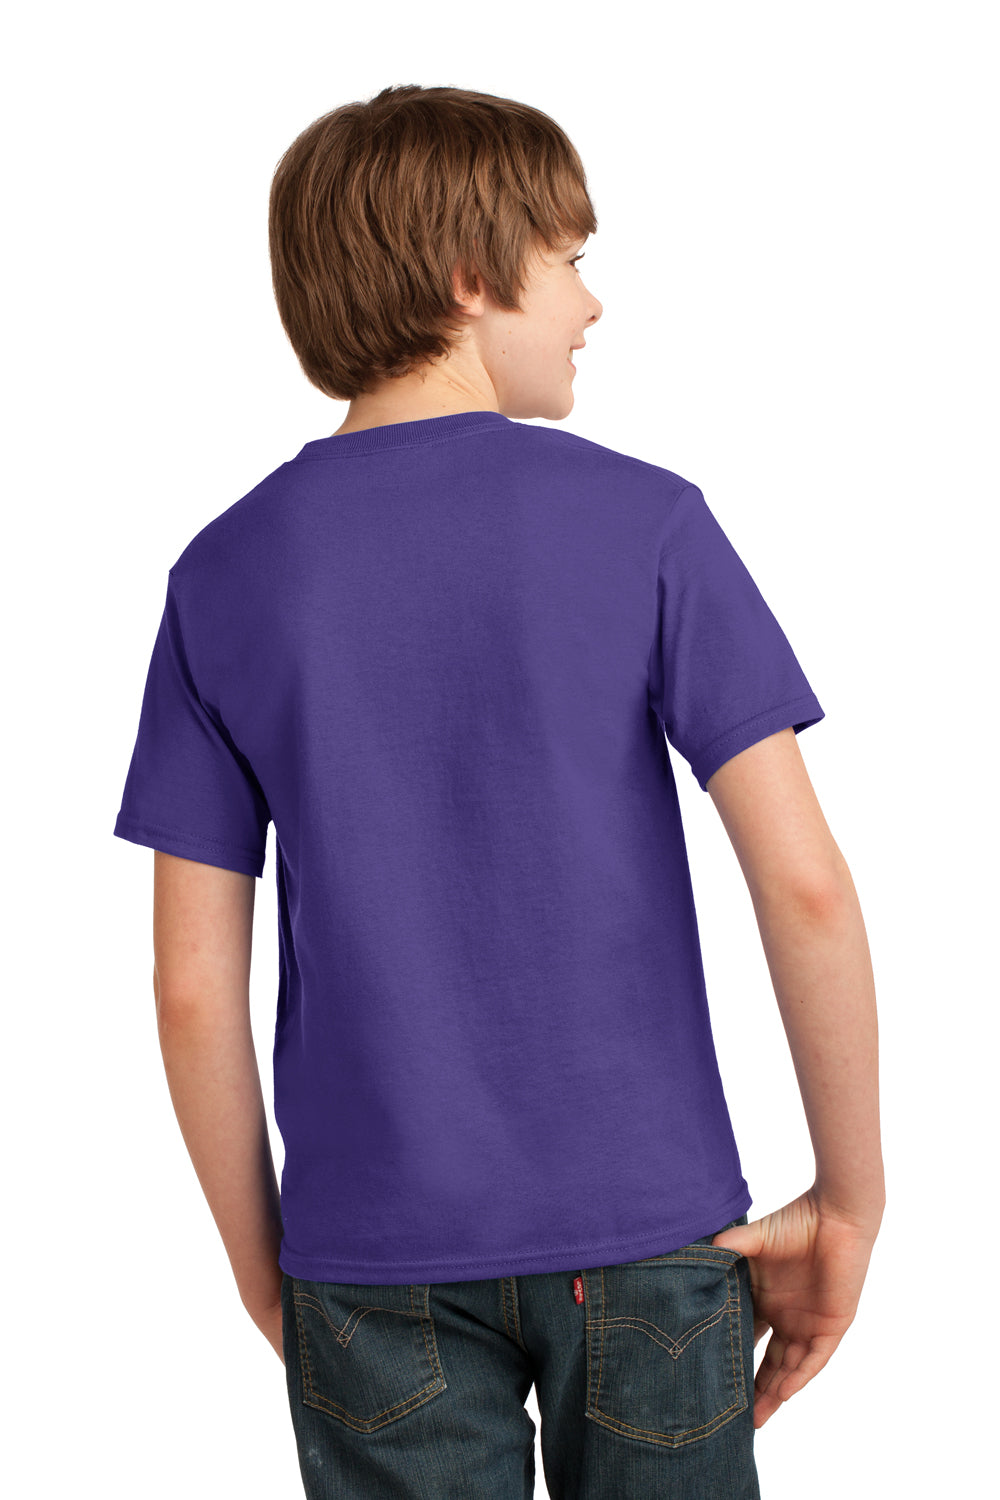 Port & Company PC61Y Youth Essential Short Sleeve Crewneck T-Shirt Purple Back